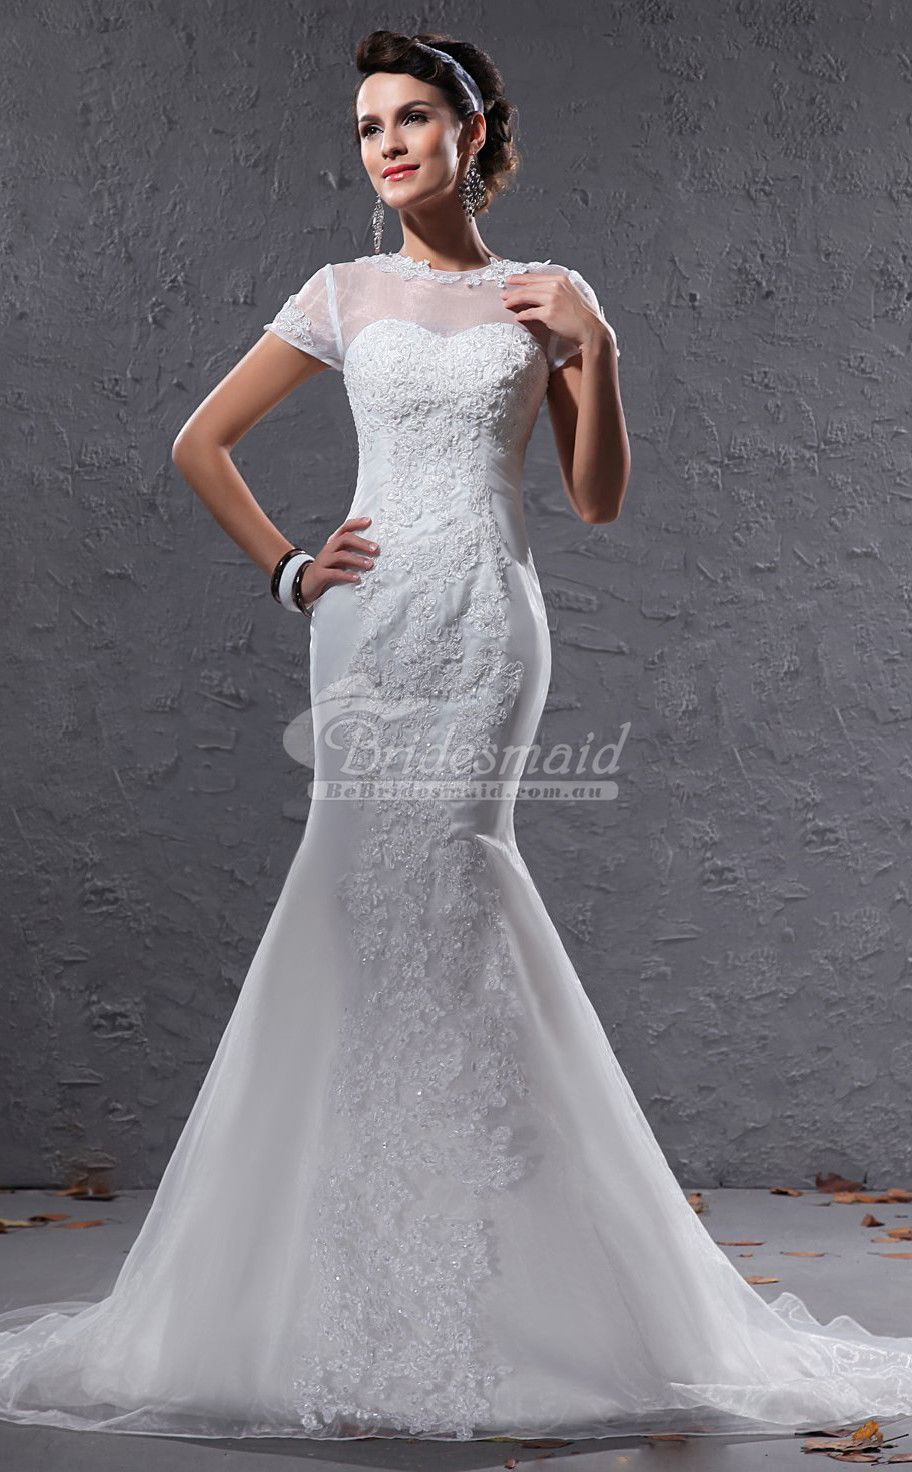 Modest illusion short sleeve ivory mermaid wedding dressescoupon